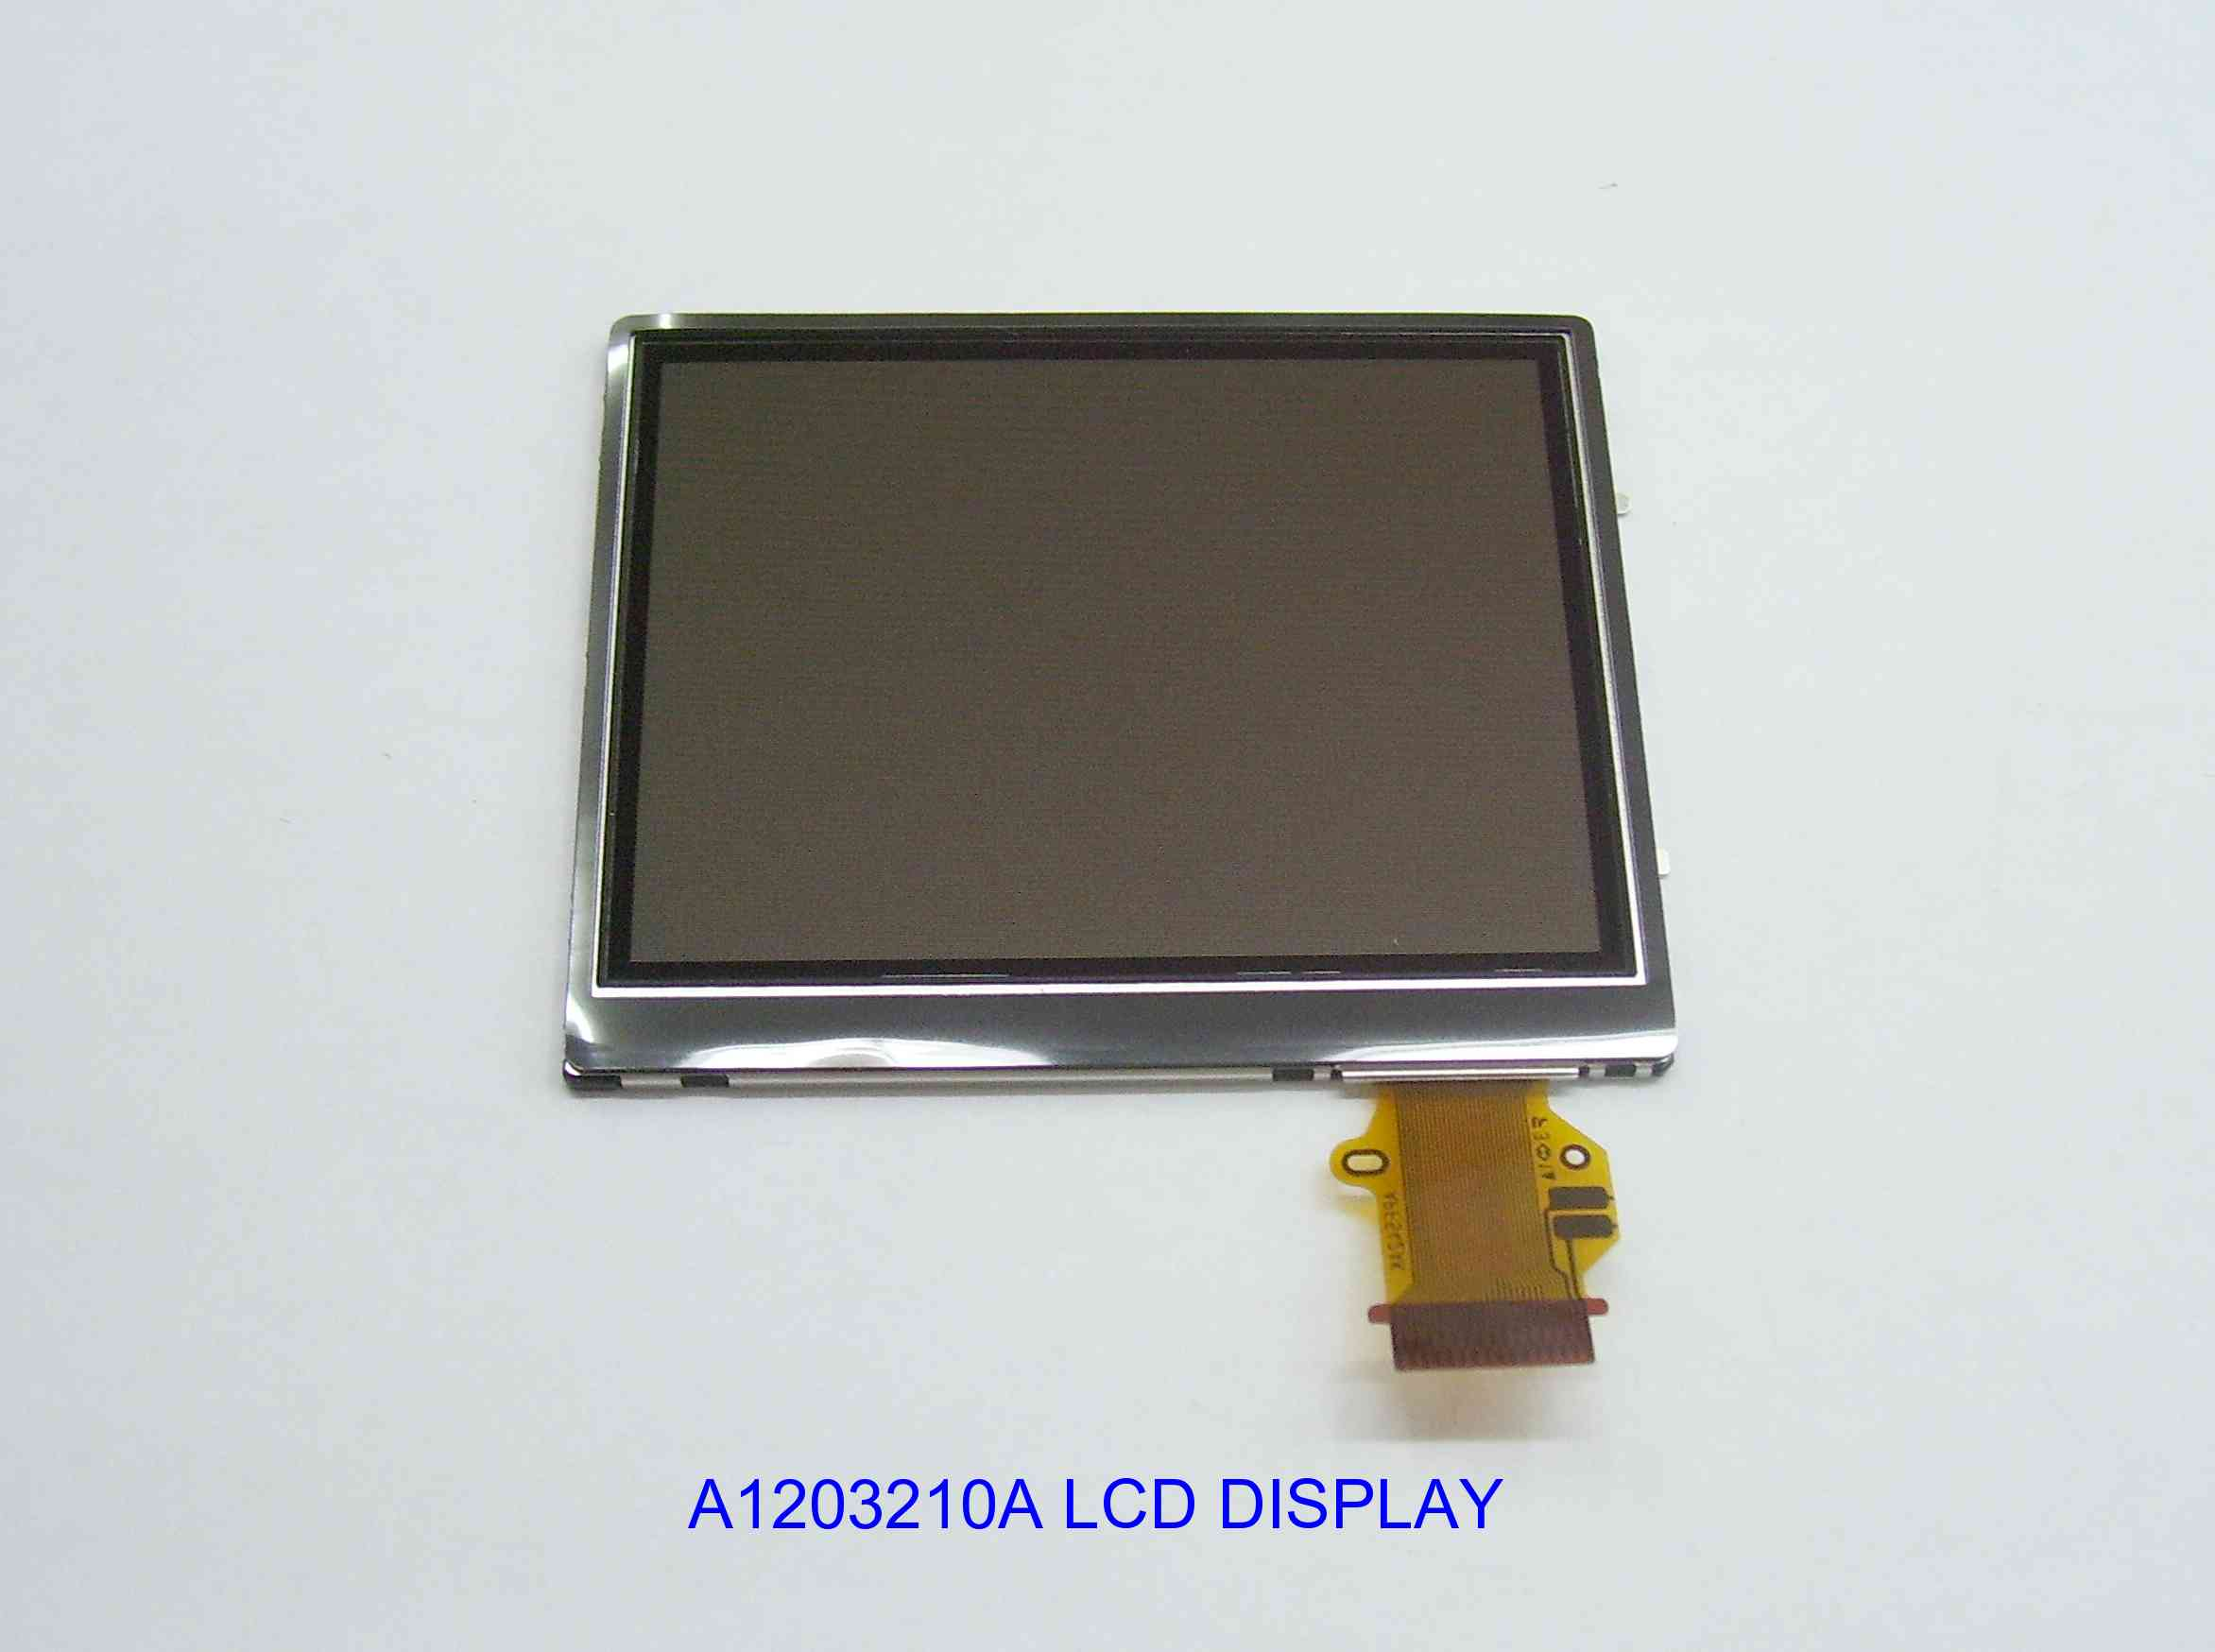 LCD DISPALY A1203210A